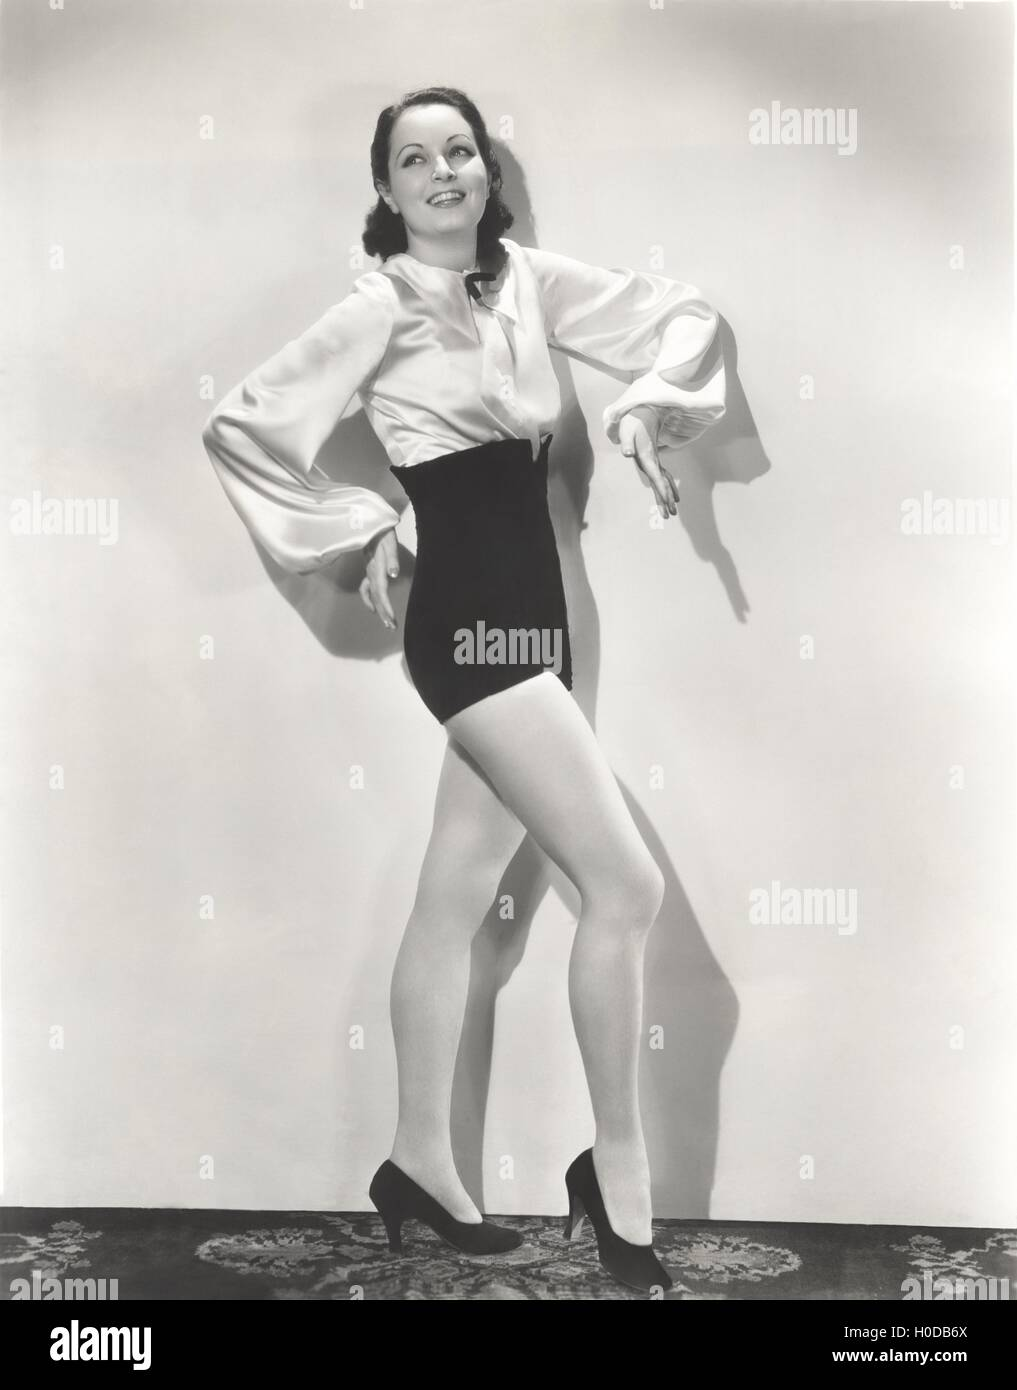 Dancer posing in high-waisted shorts and silk blouse - Stock Image